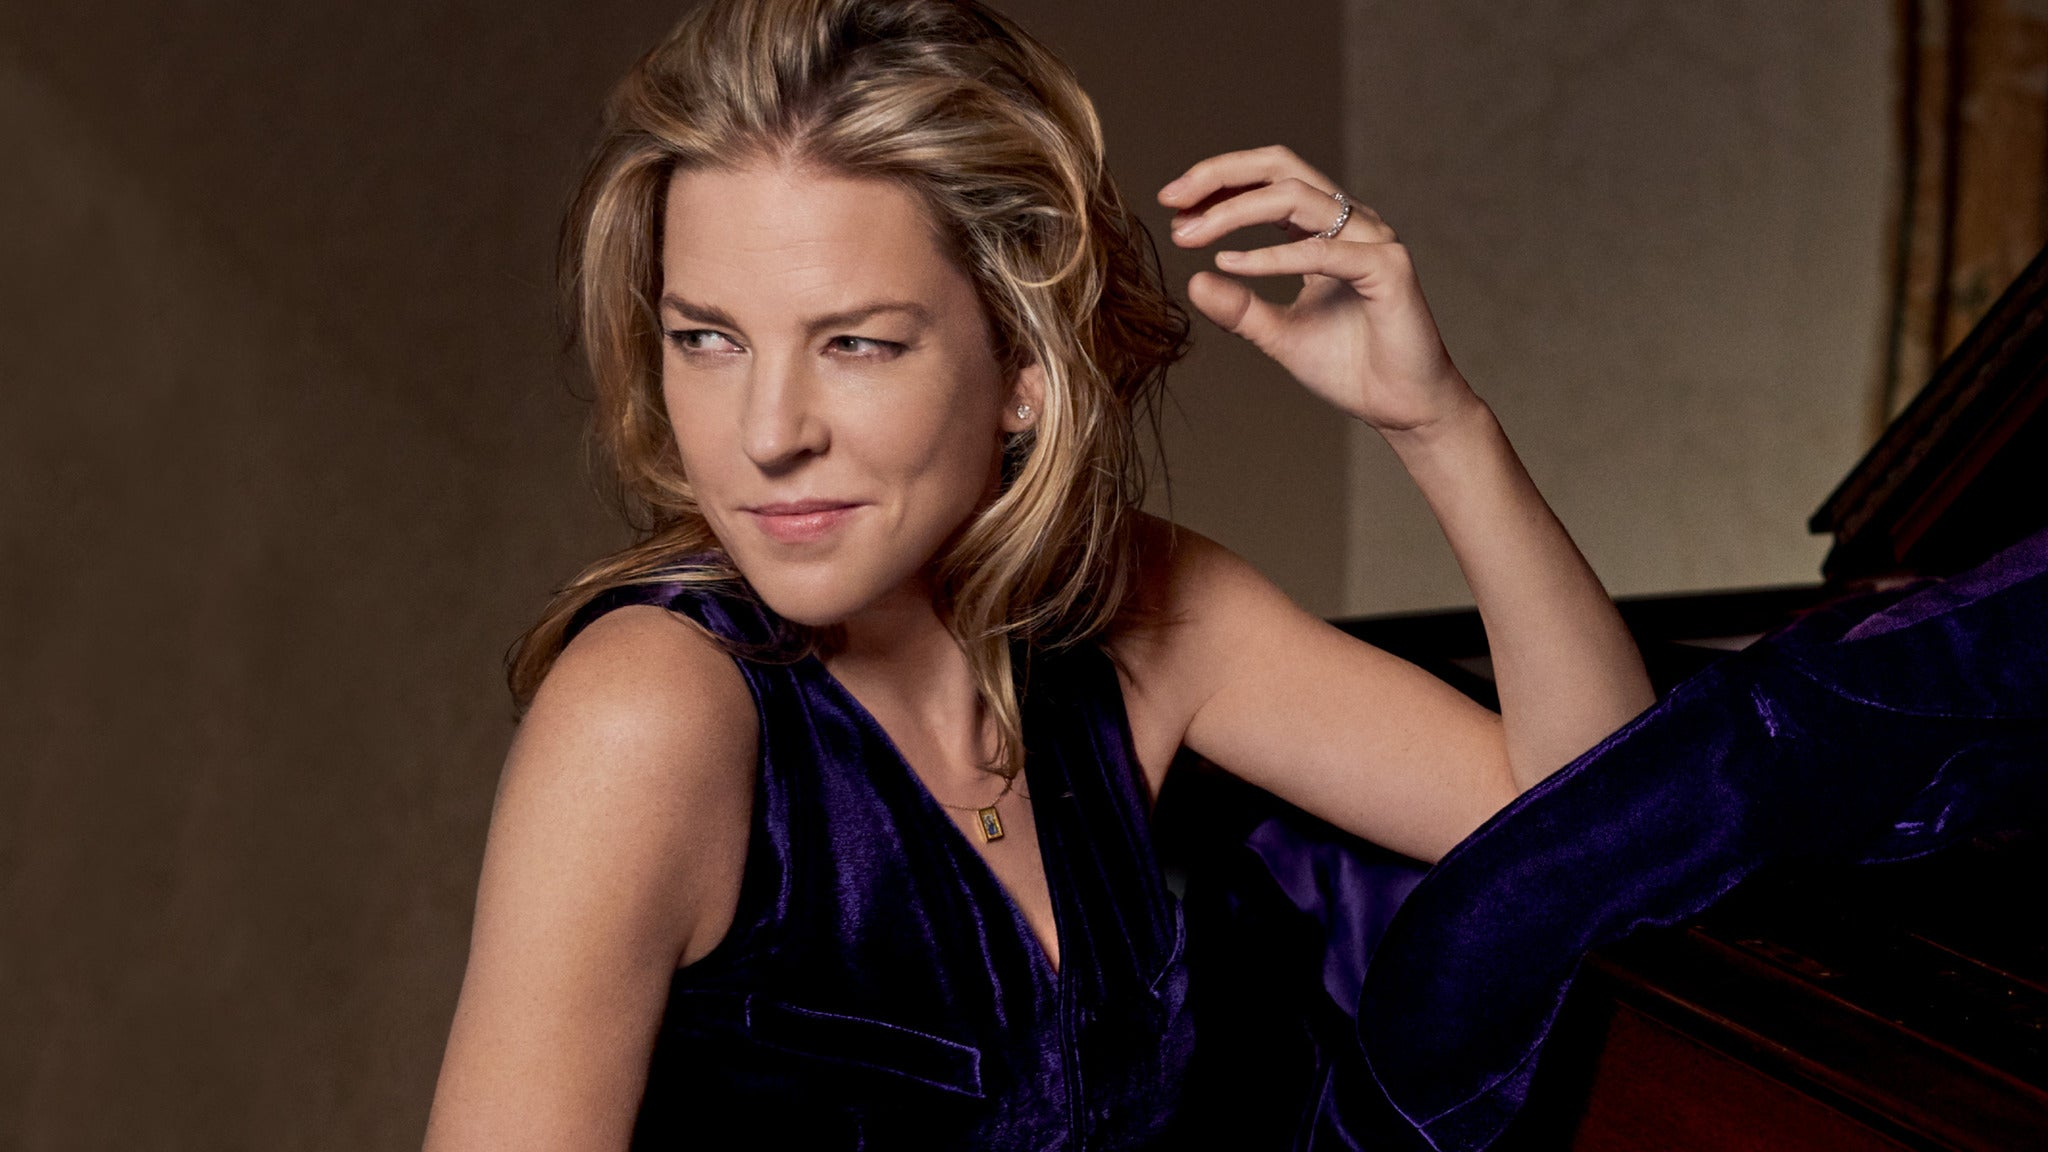 Diana Krall at Wesbanco Arena